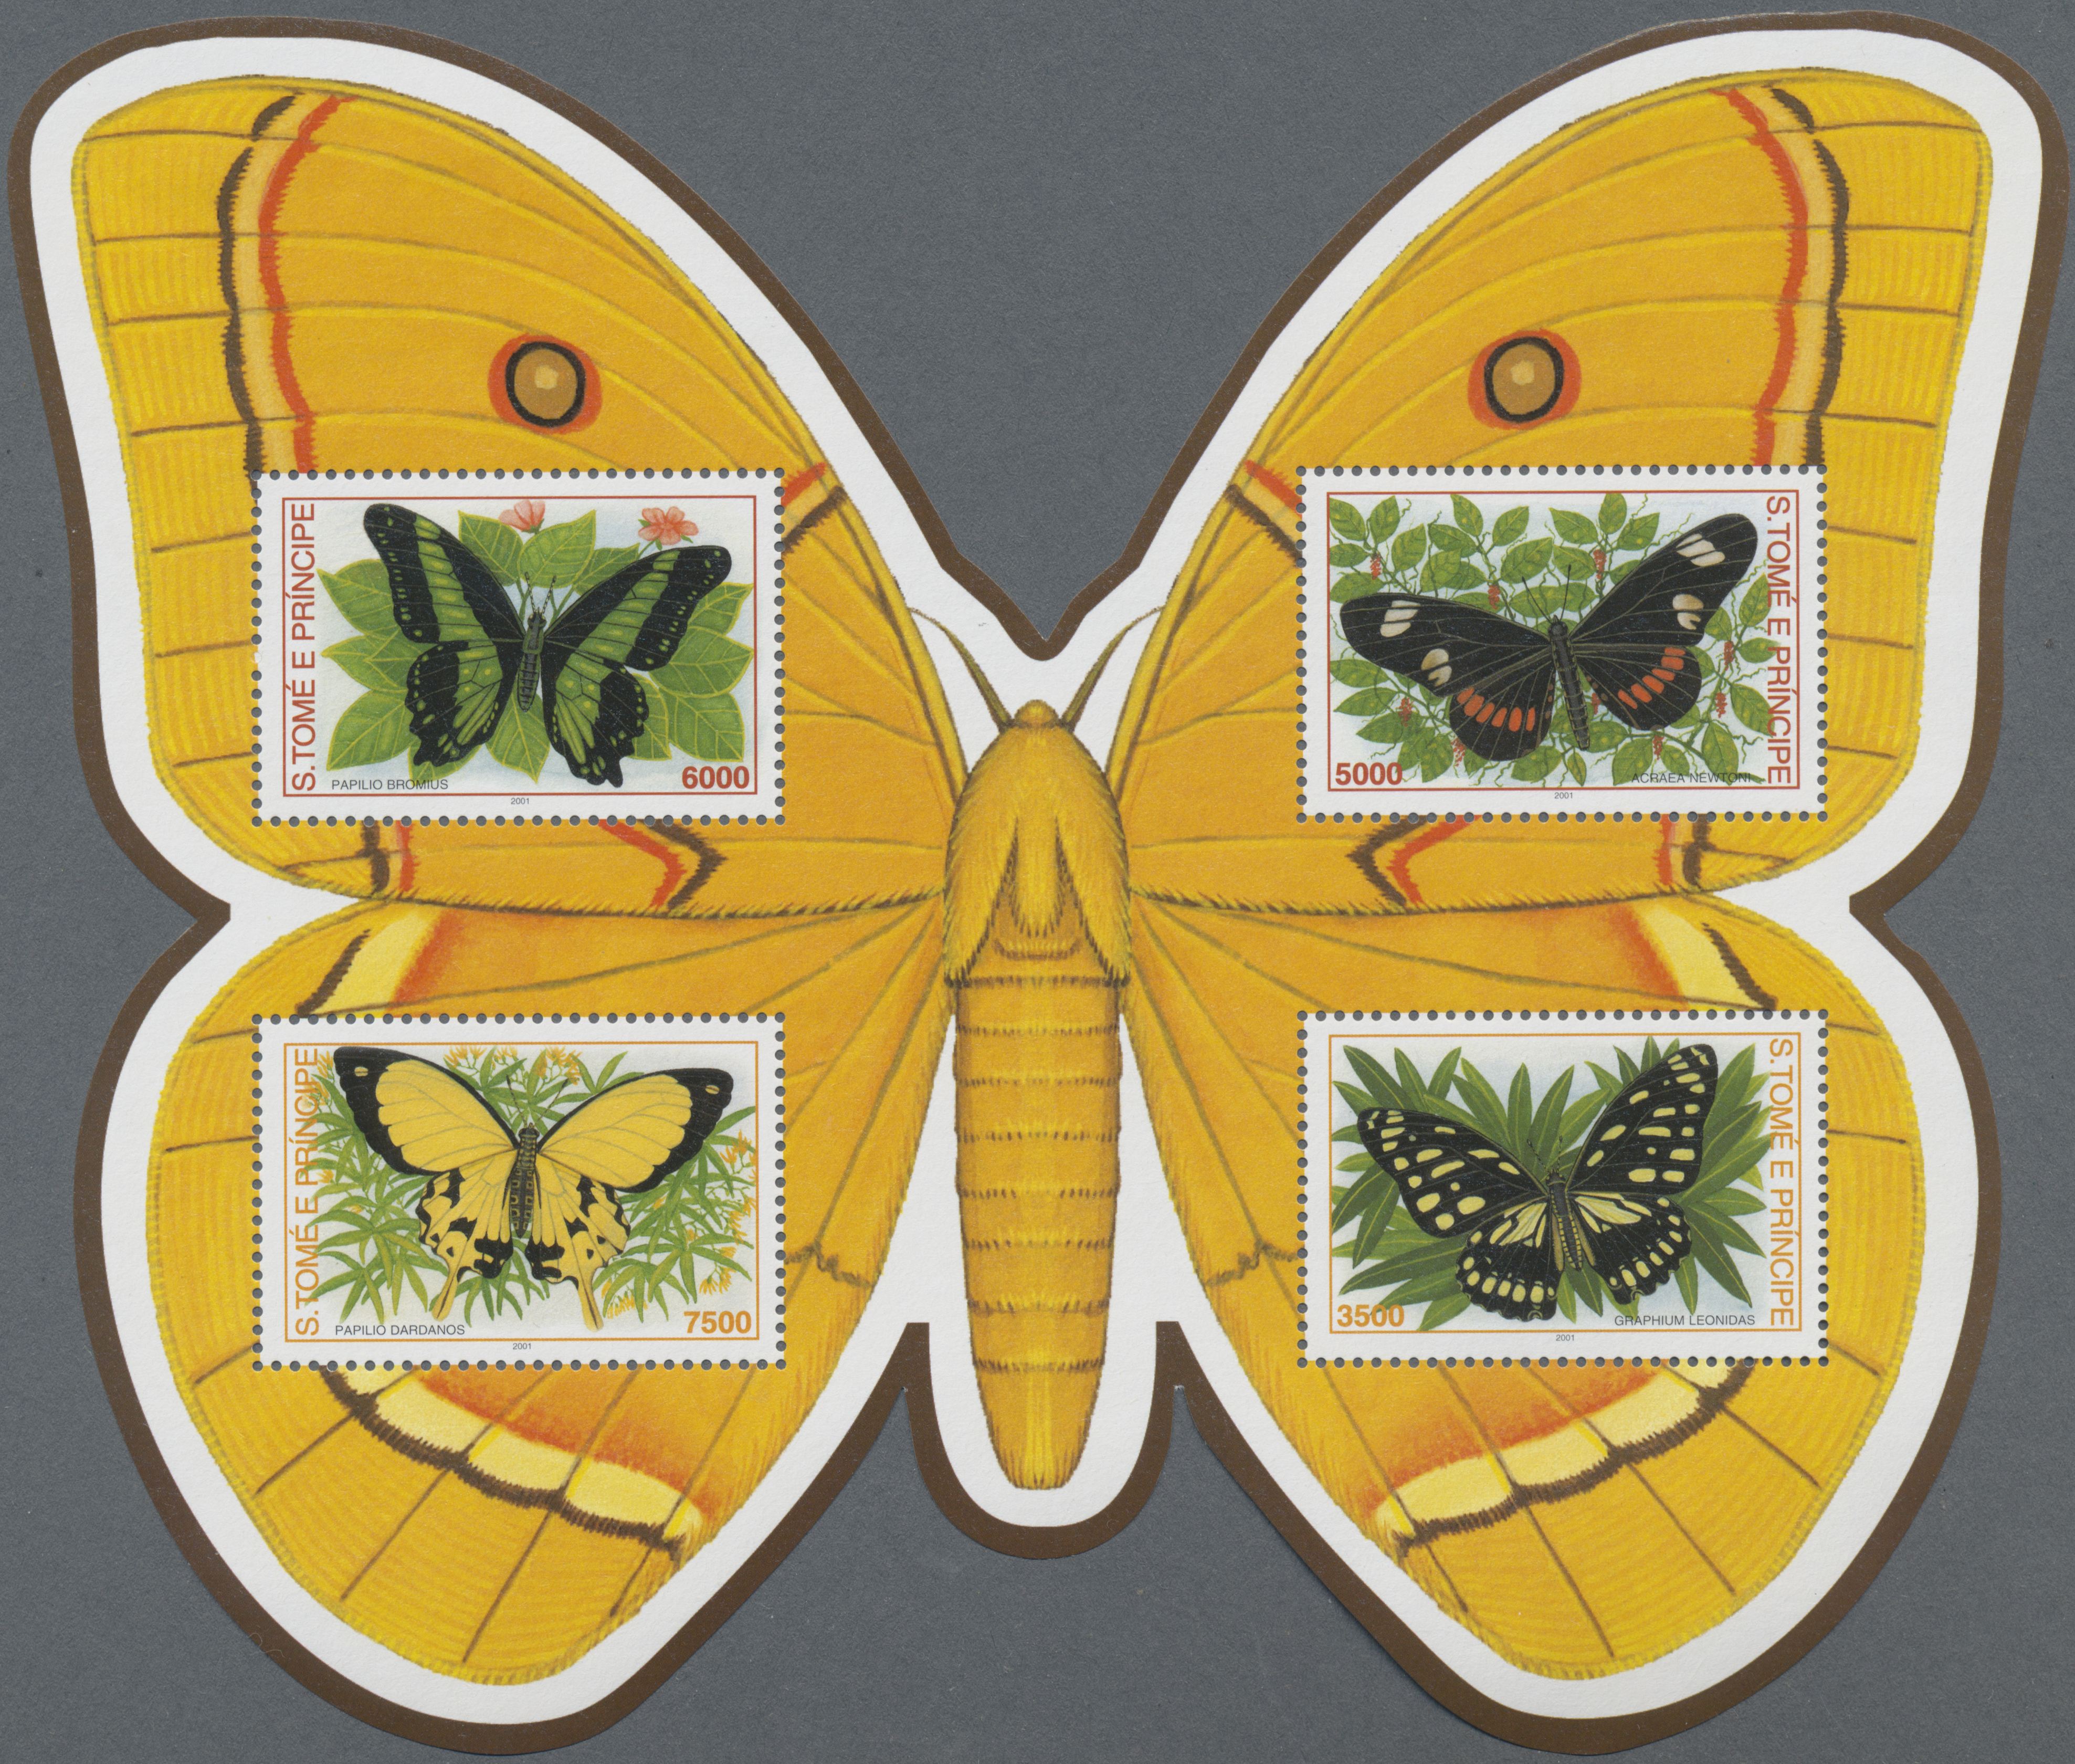 Lot 34885 - thematik: tiere-schmetterlinge / animals-butterflies  -  Auktionshaus Christoph Gärtner GmbH & Co. KG Sale #44 Collections Germany